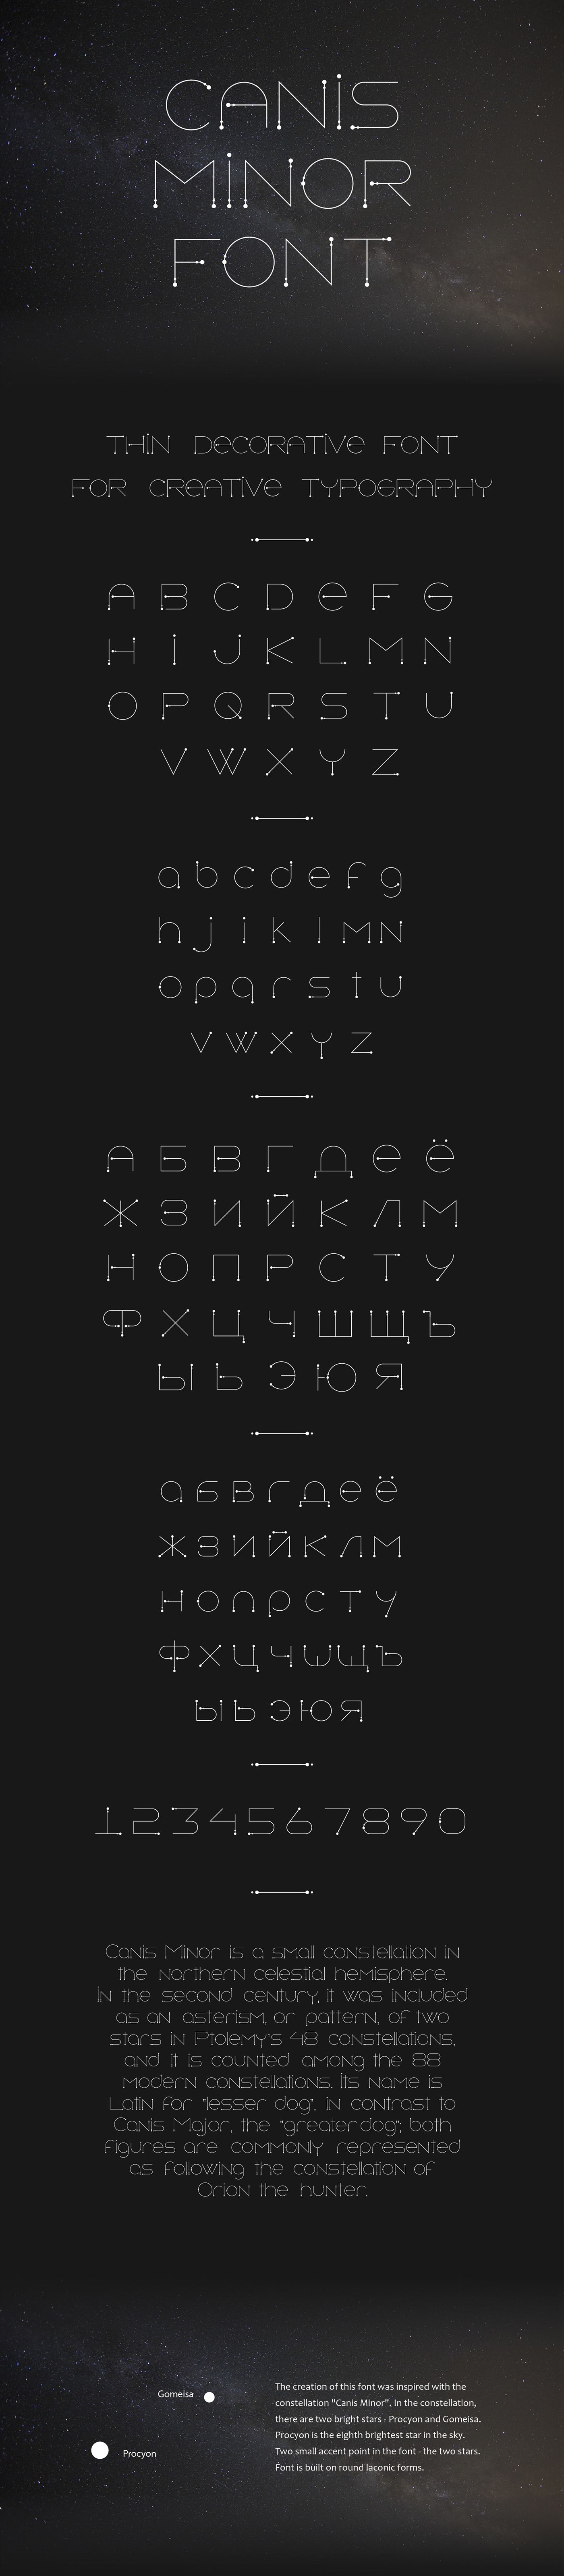 """The creation of this font was inspired with the constellation """"Canis Minor"""". In the constellation, there are two bright stars - Procyon and Gomeisa. Procyon is the eighth brightest star in the sky. Two small accent point in the font - the two stars. Font …"""